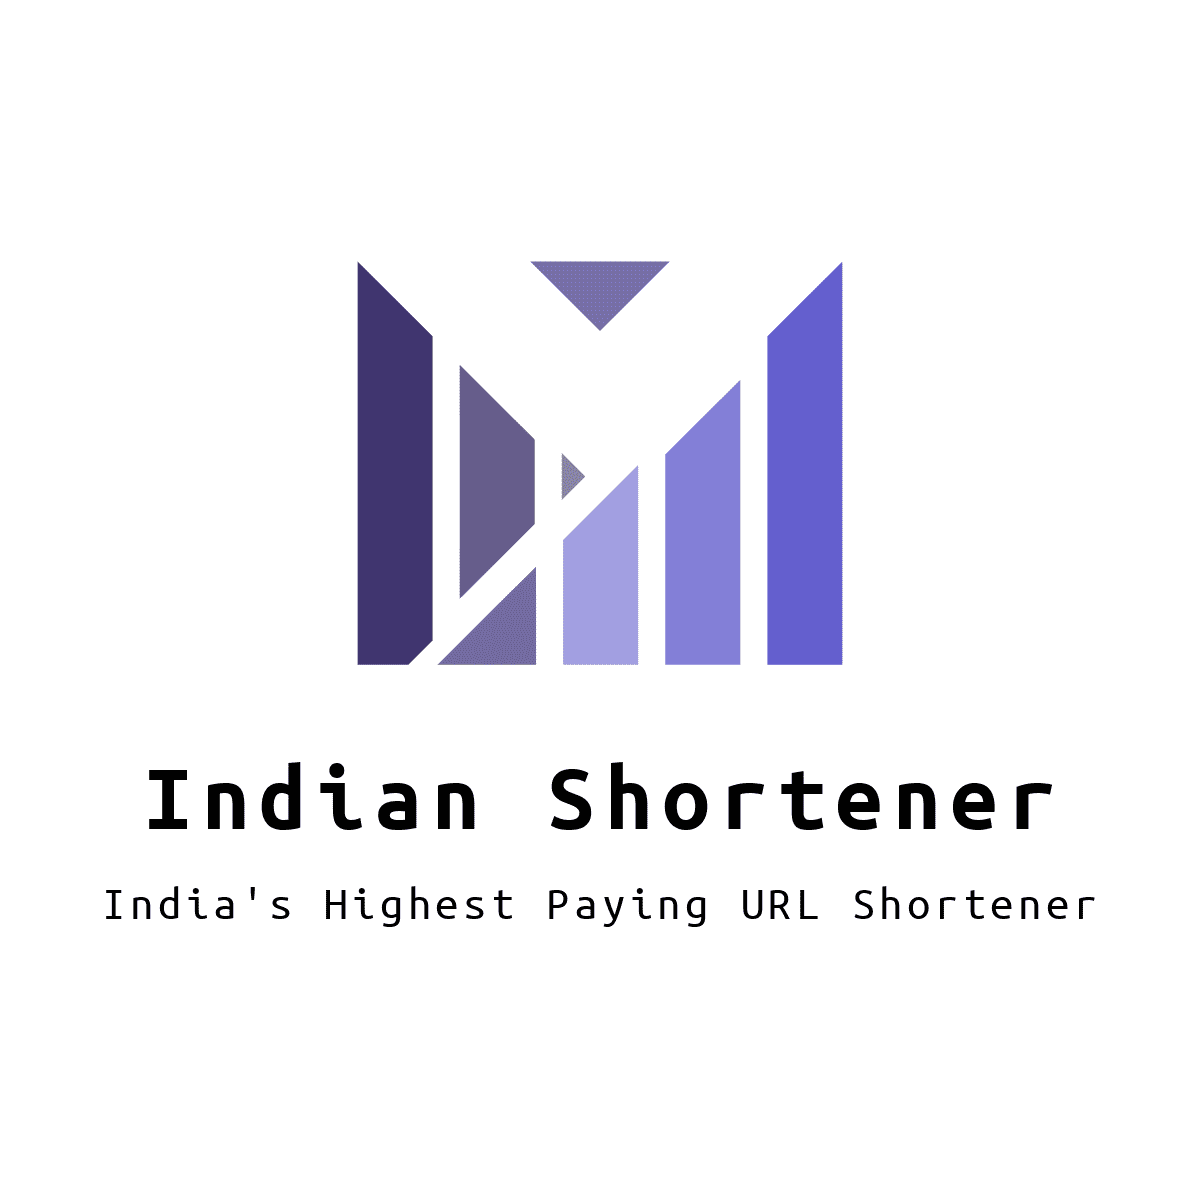 Indian Shortener